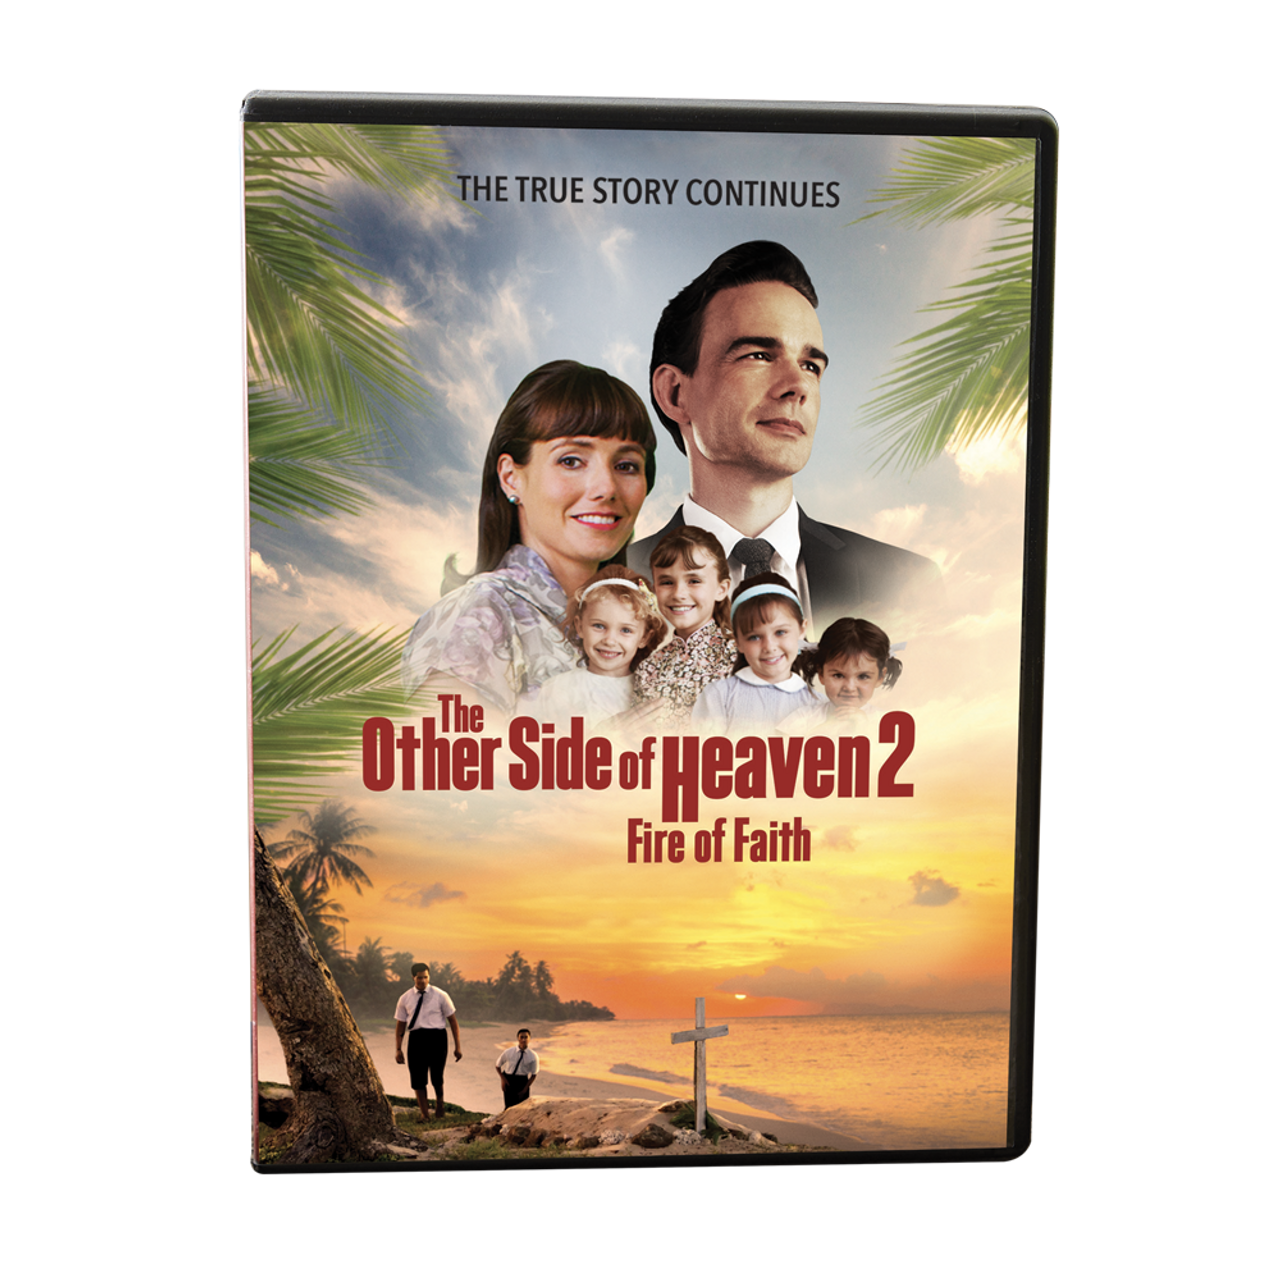 The Other Side of Heaven 2: Fire of Faith (DVD)*